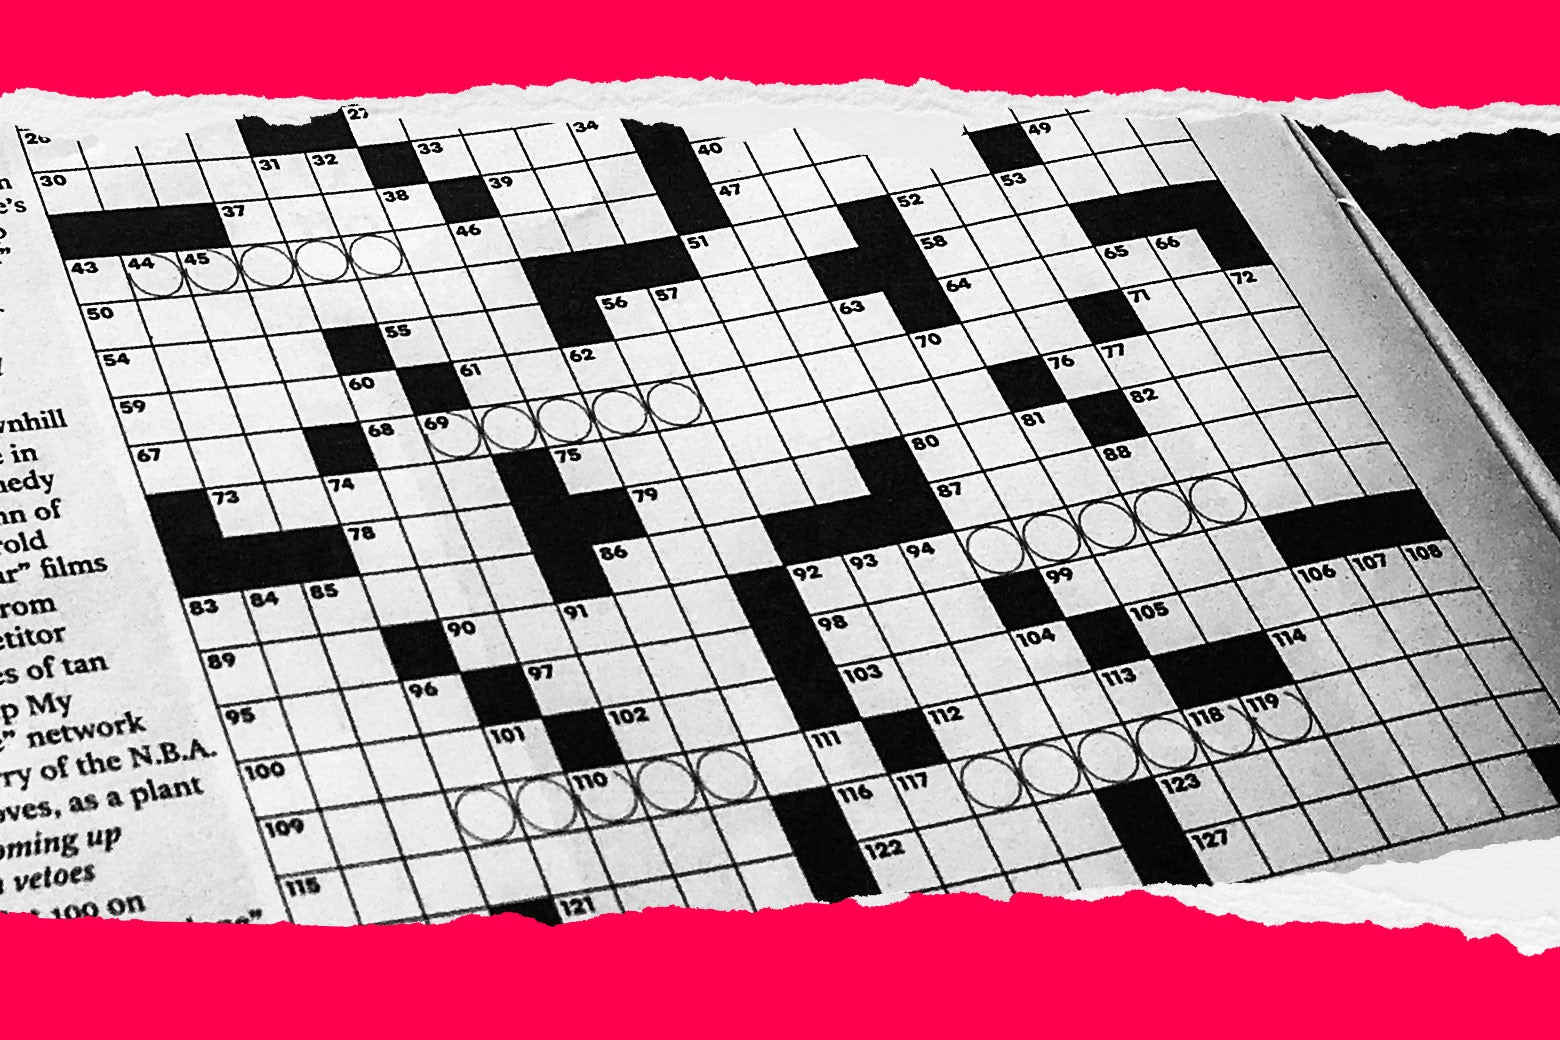 photo regarding Free Printable New York Times Crossword Puzzles identified as The NYT crossword puzzles employ the service of of an ethnic slur states a ton